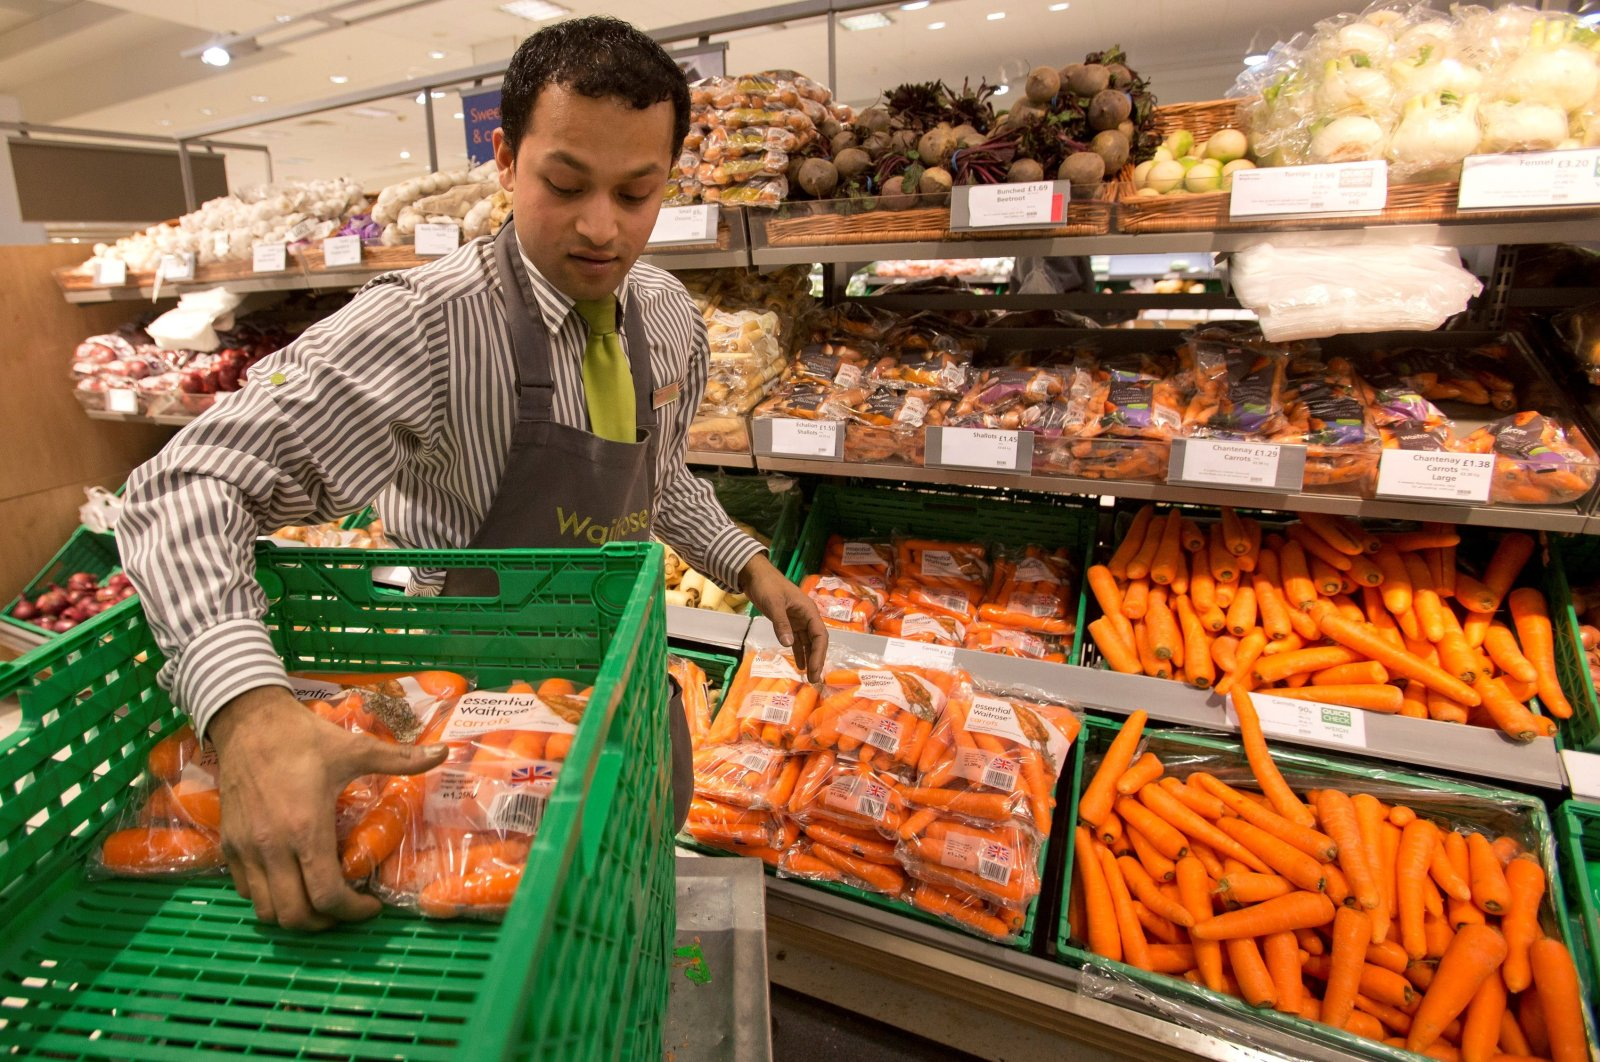 A supermarket worker stocks produce shelves in the Canary Wharf store of Waitrose, London, the U.K., Jan. 23, 2013. (REUTERS File Photo)